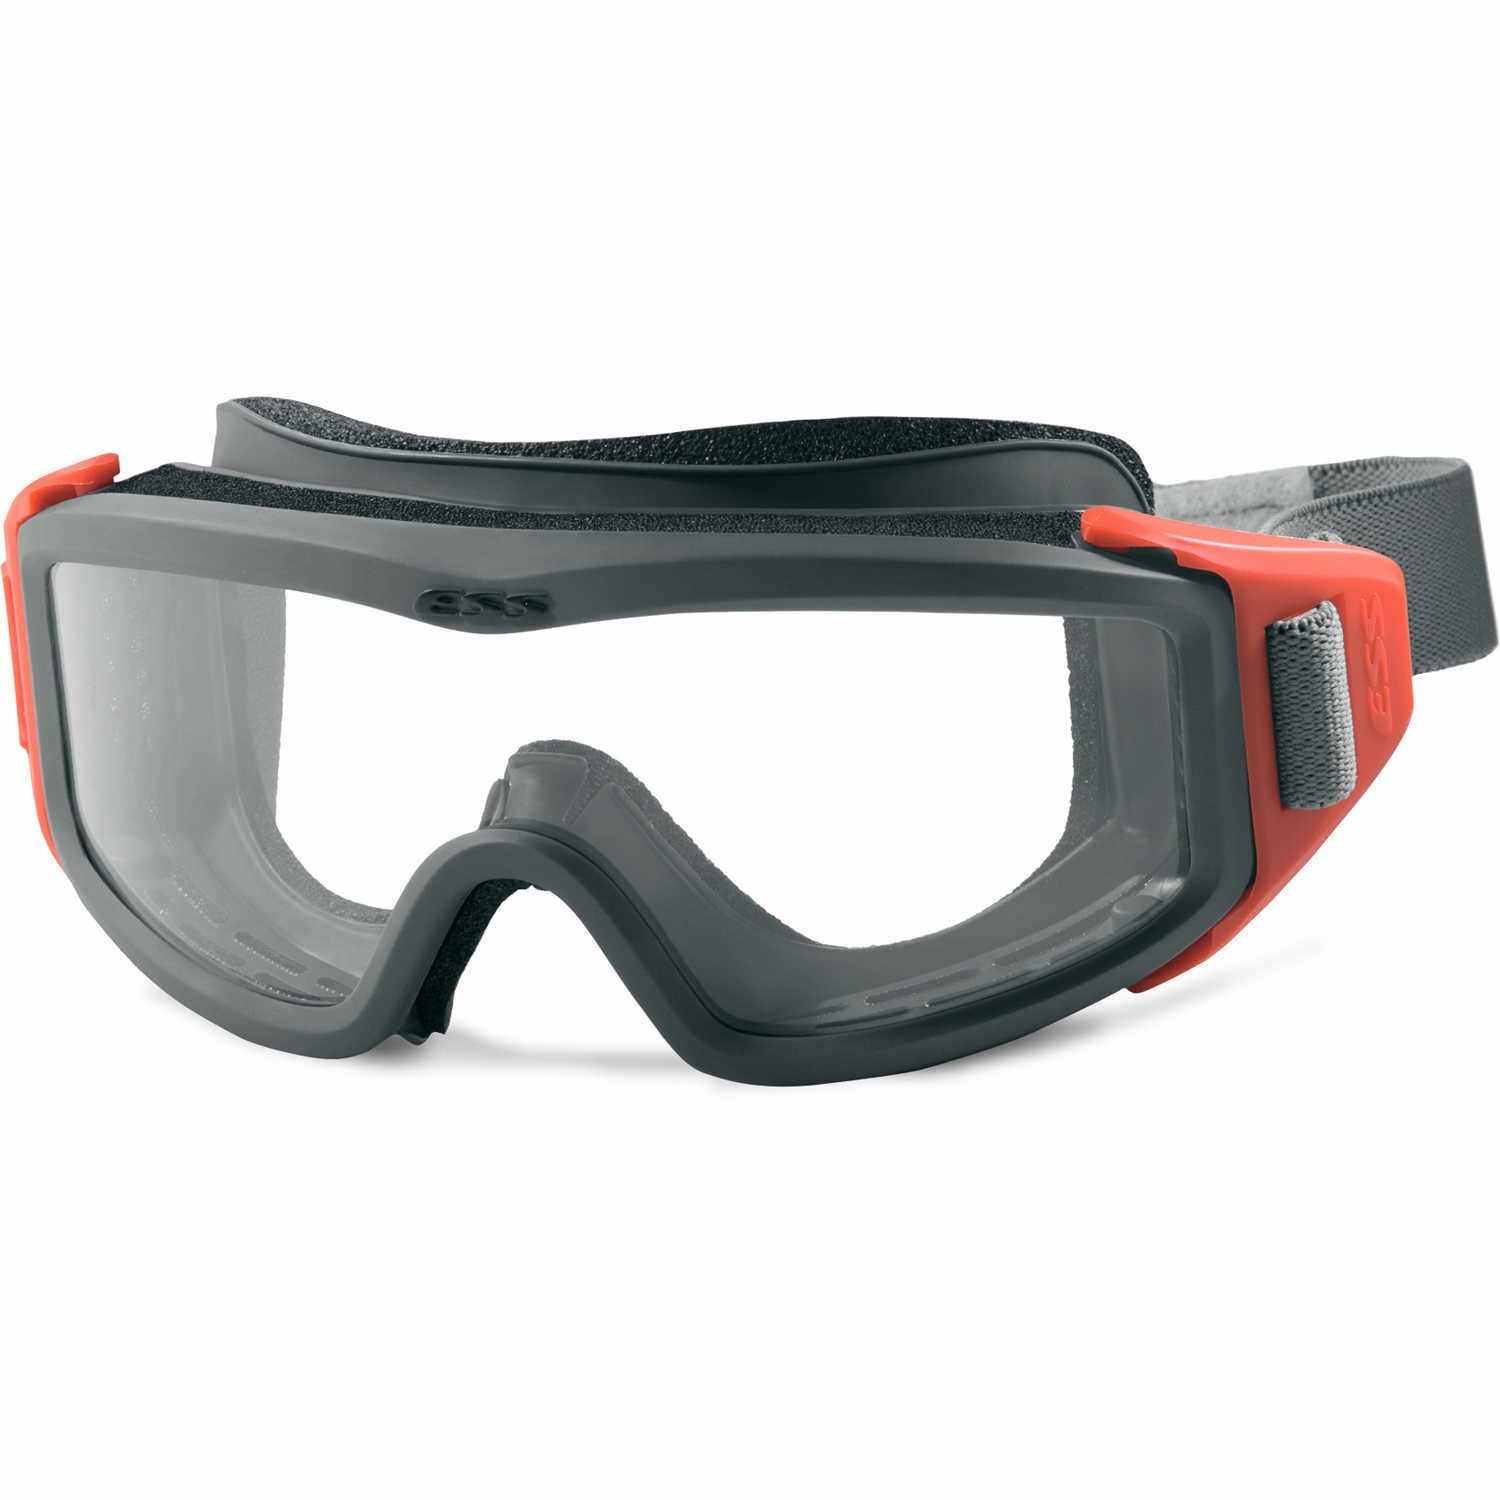 Ess- Firepro Fs Gog EYE SAFETY SYSTEMS